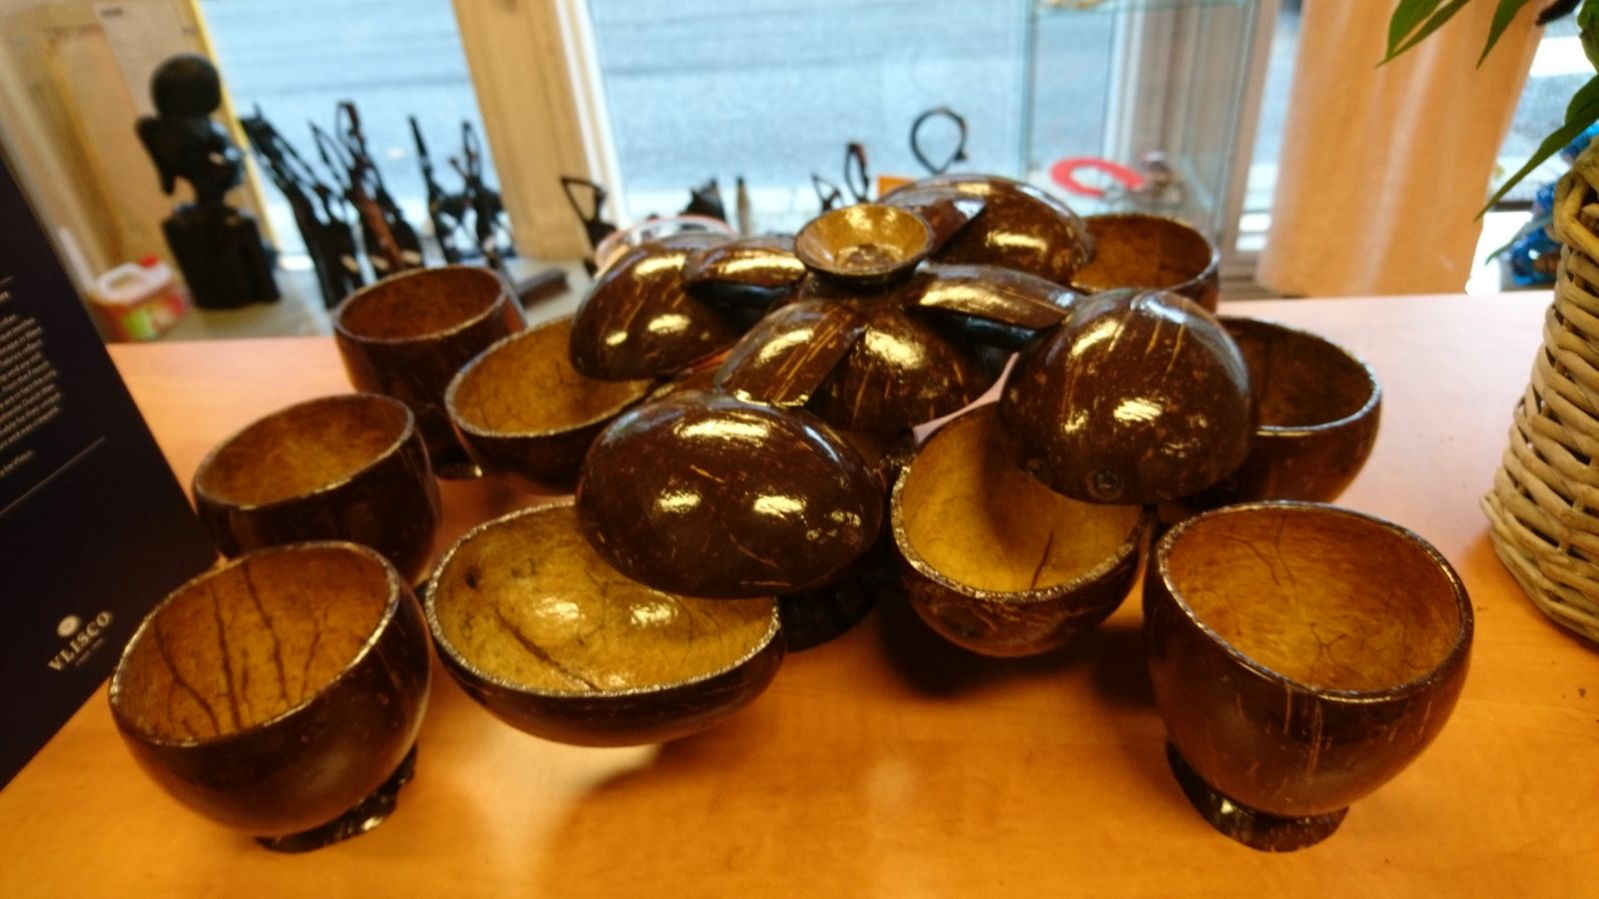 Natural coconut cups and bowls